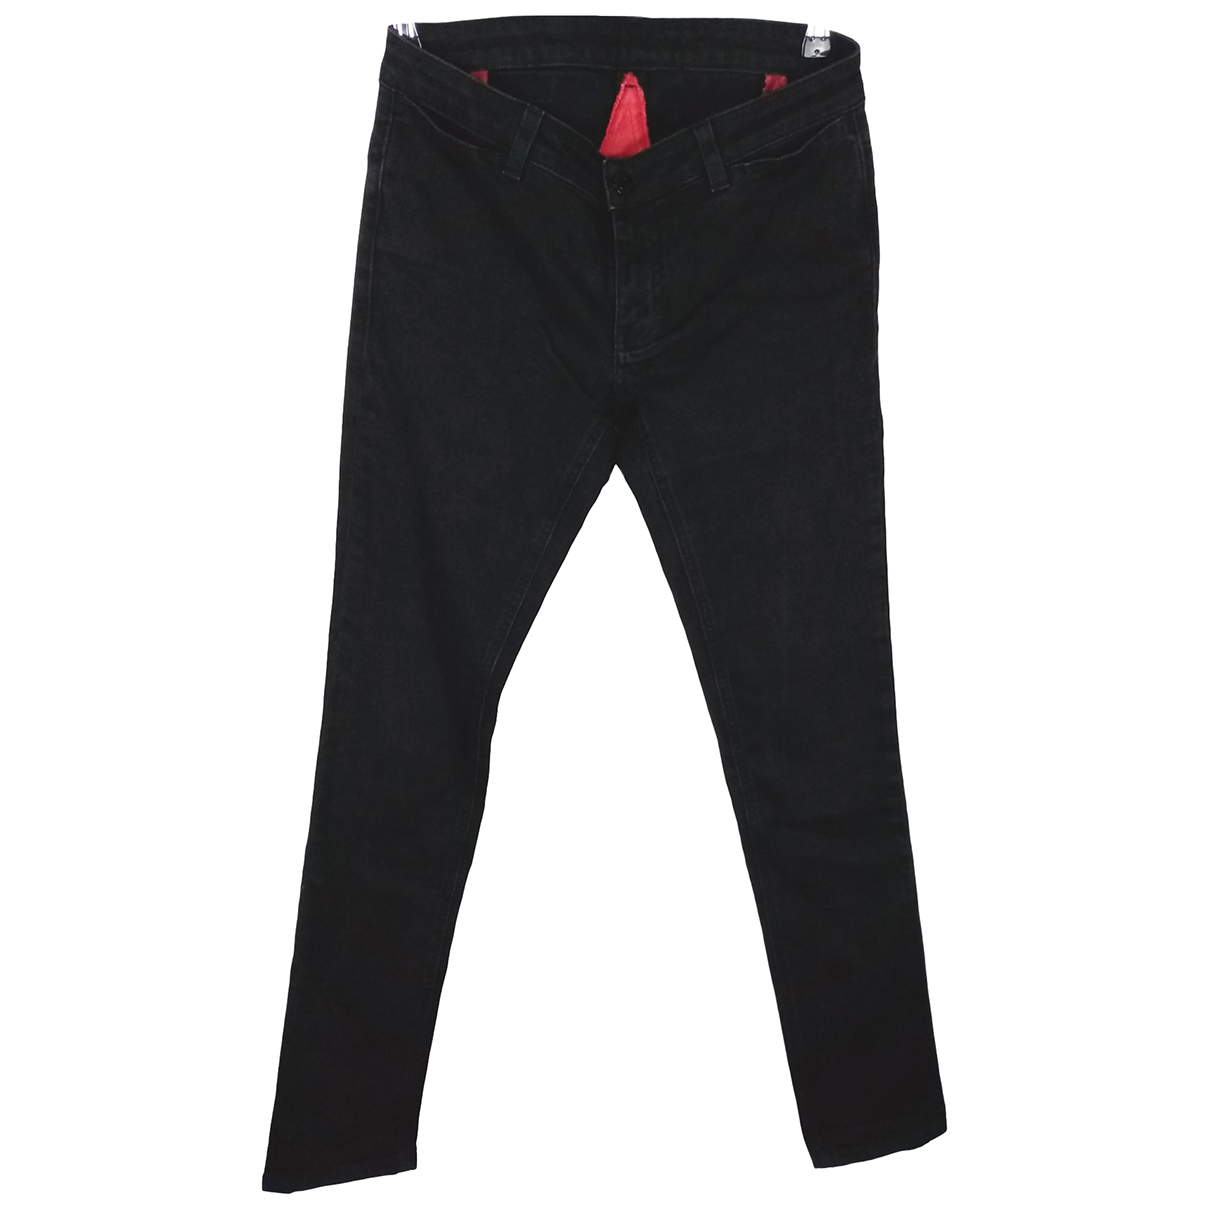 Givenchy \N Black Cotton - elasthane Jeans for Women 38 FR